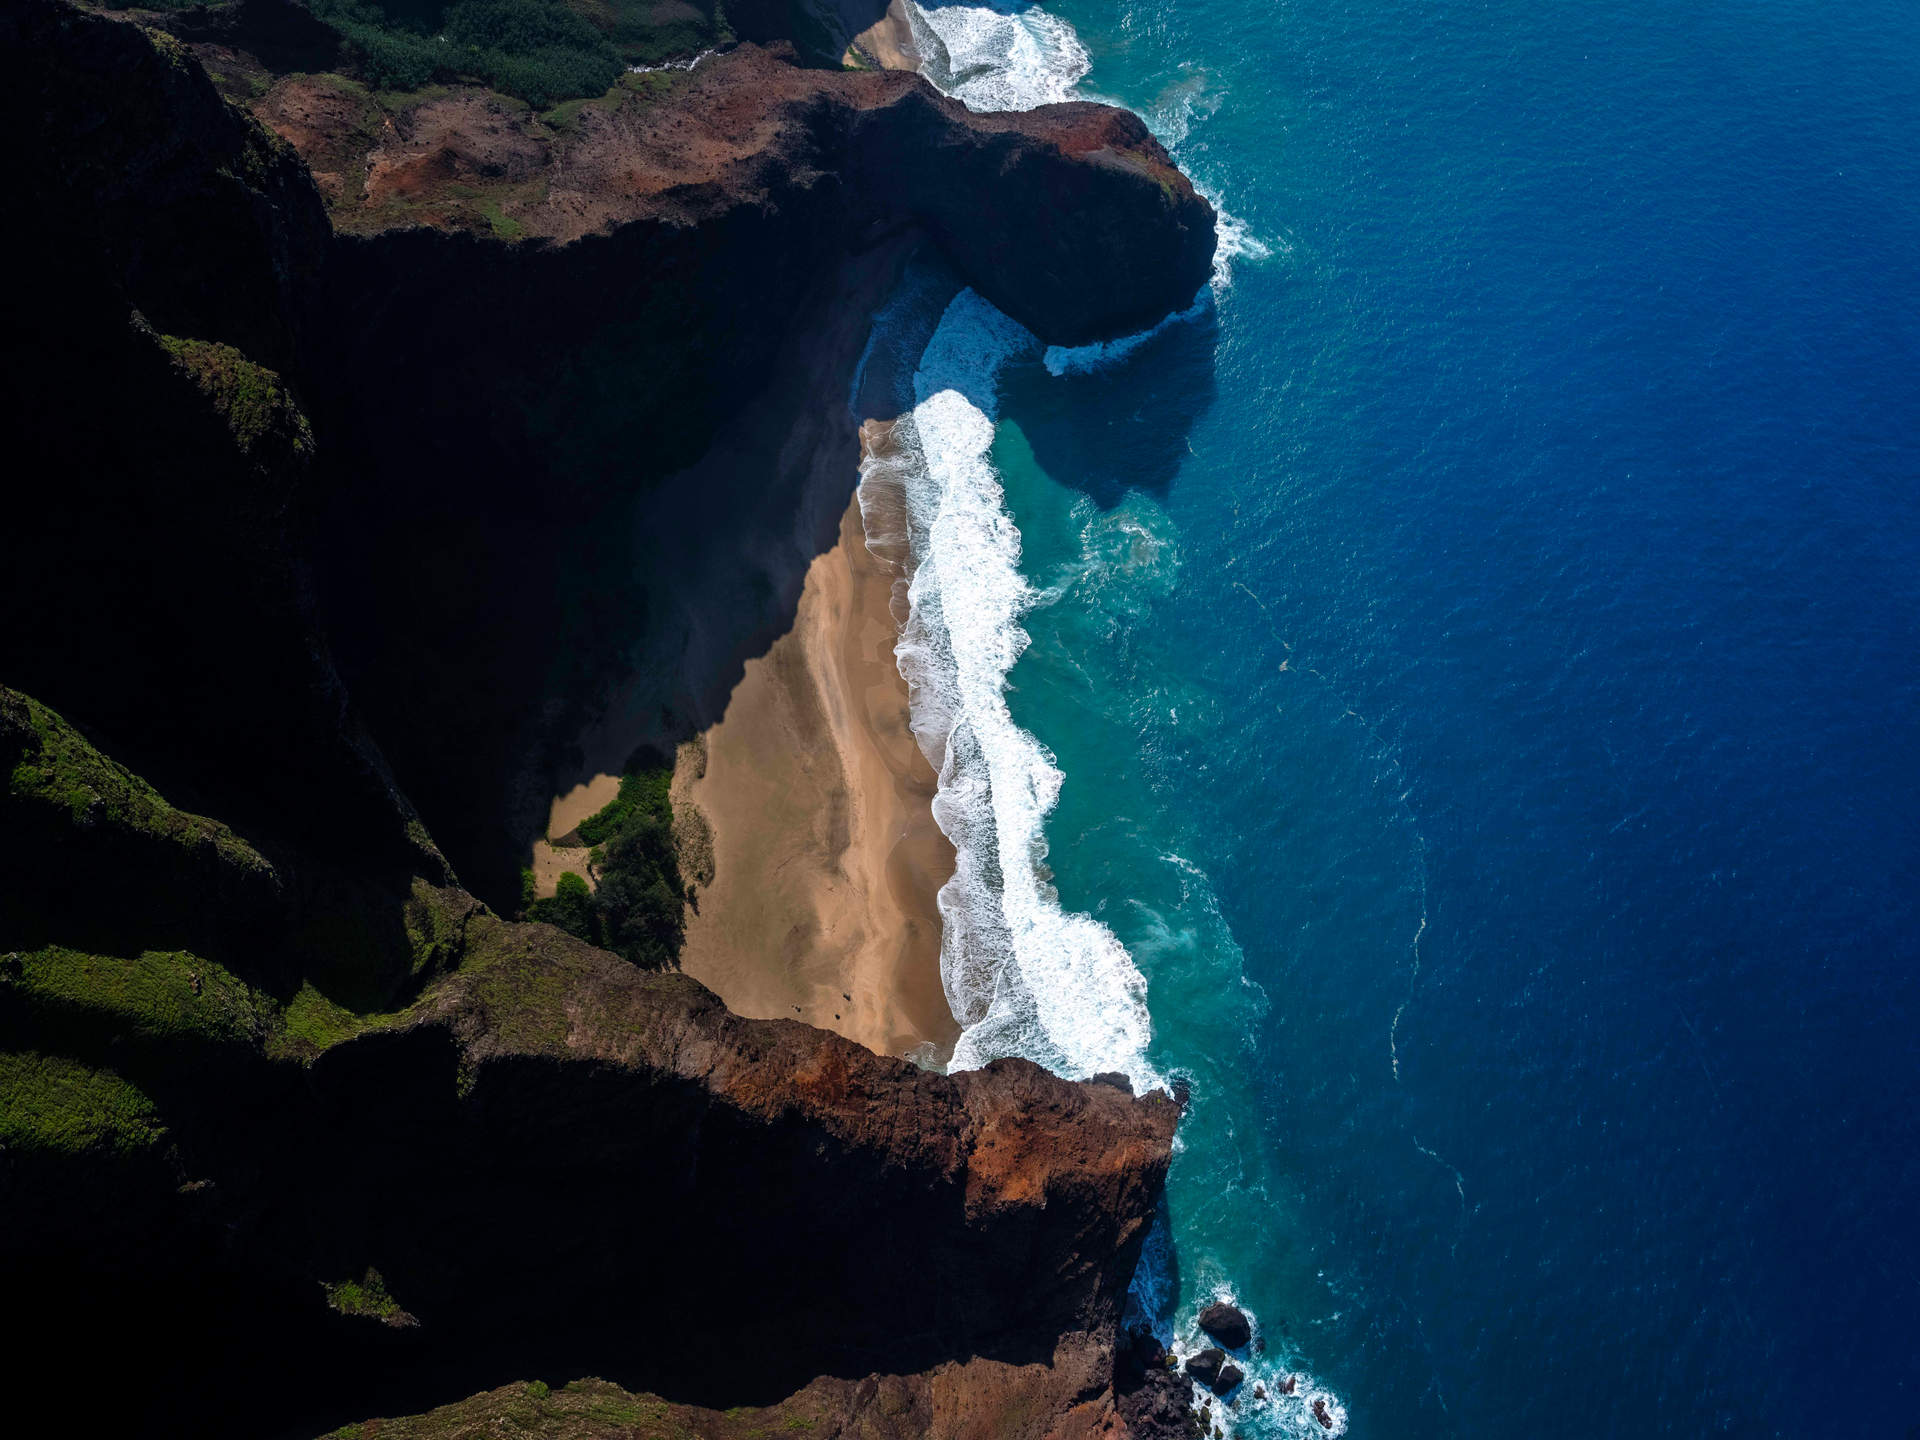 'Earth Power', Na Pali Coast, Kauai, Hawaii